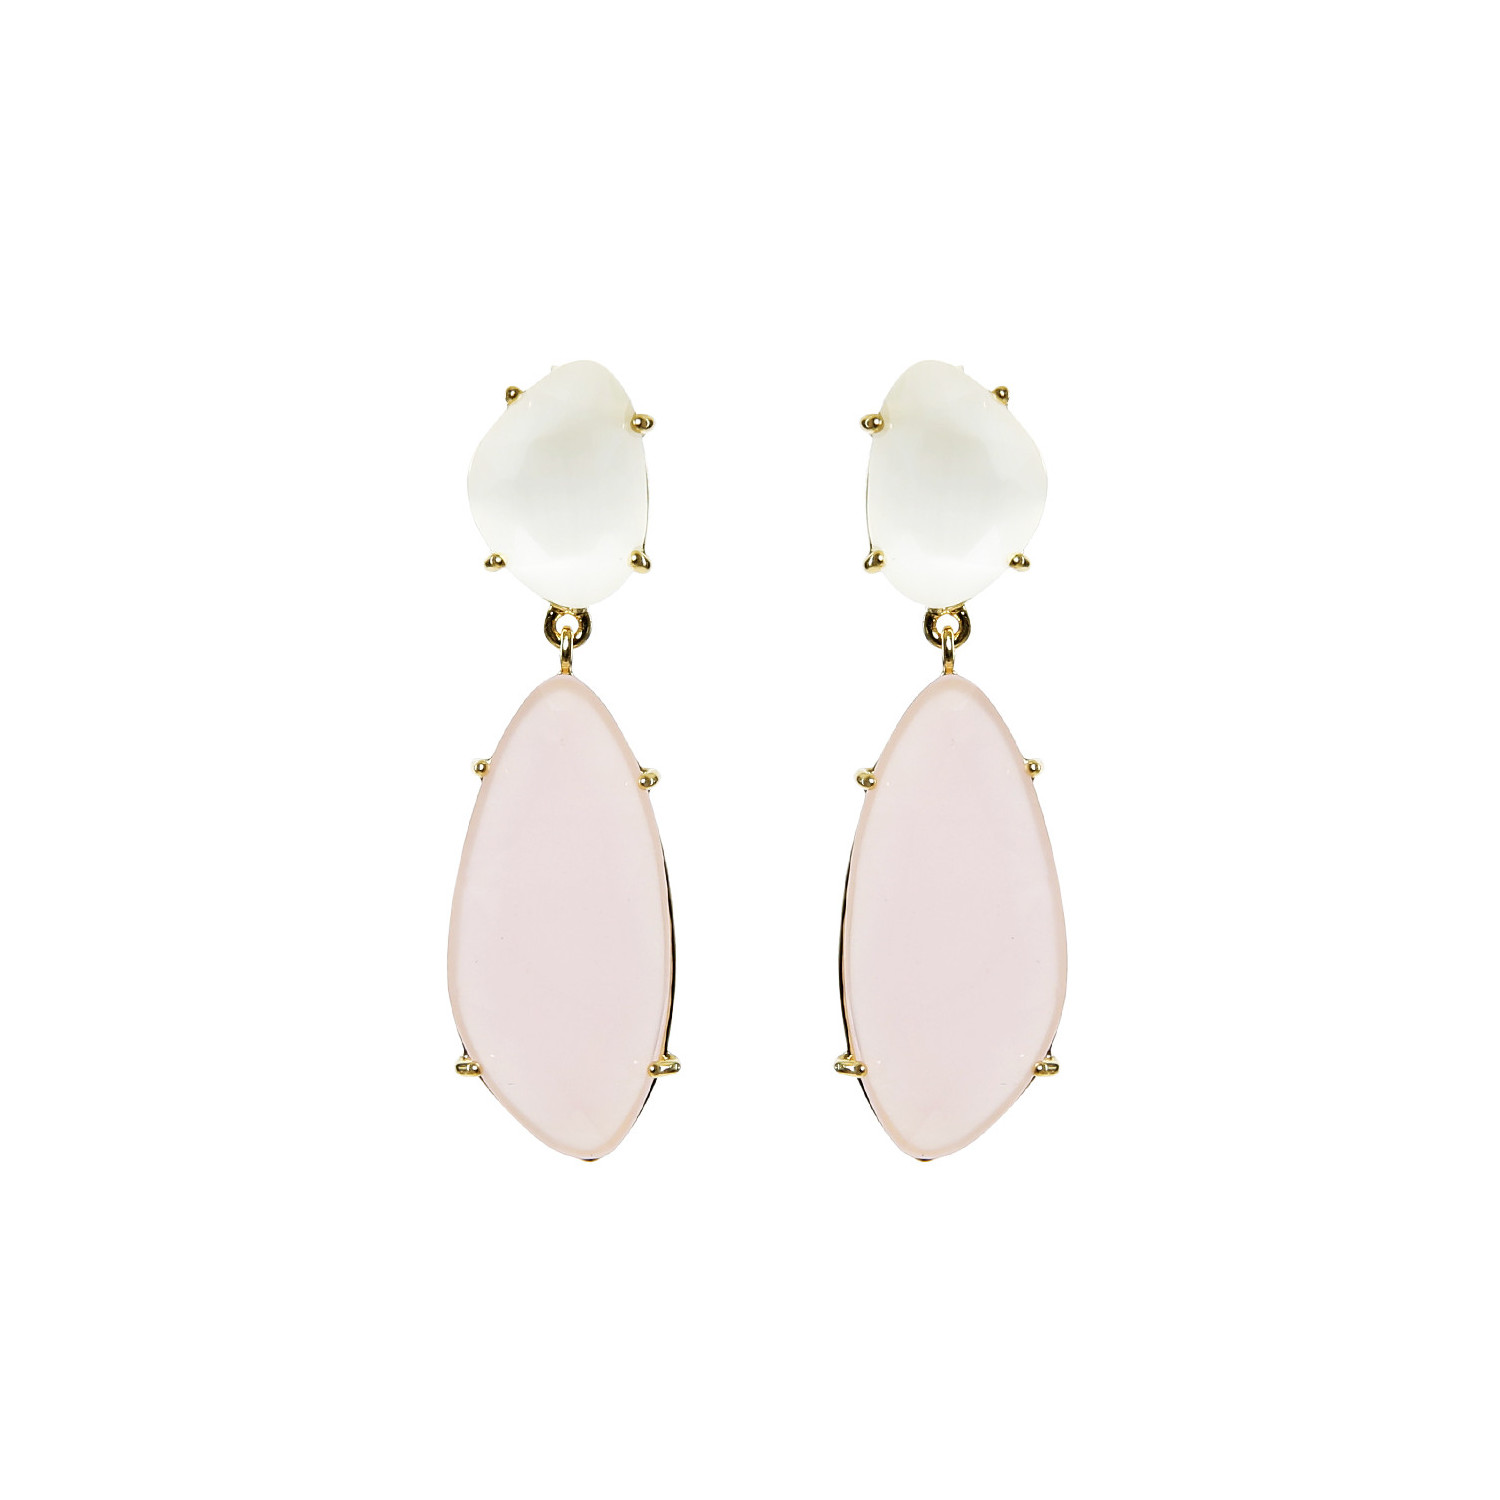 Starlight Silver Droplets Earrings with pink stone